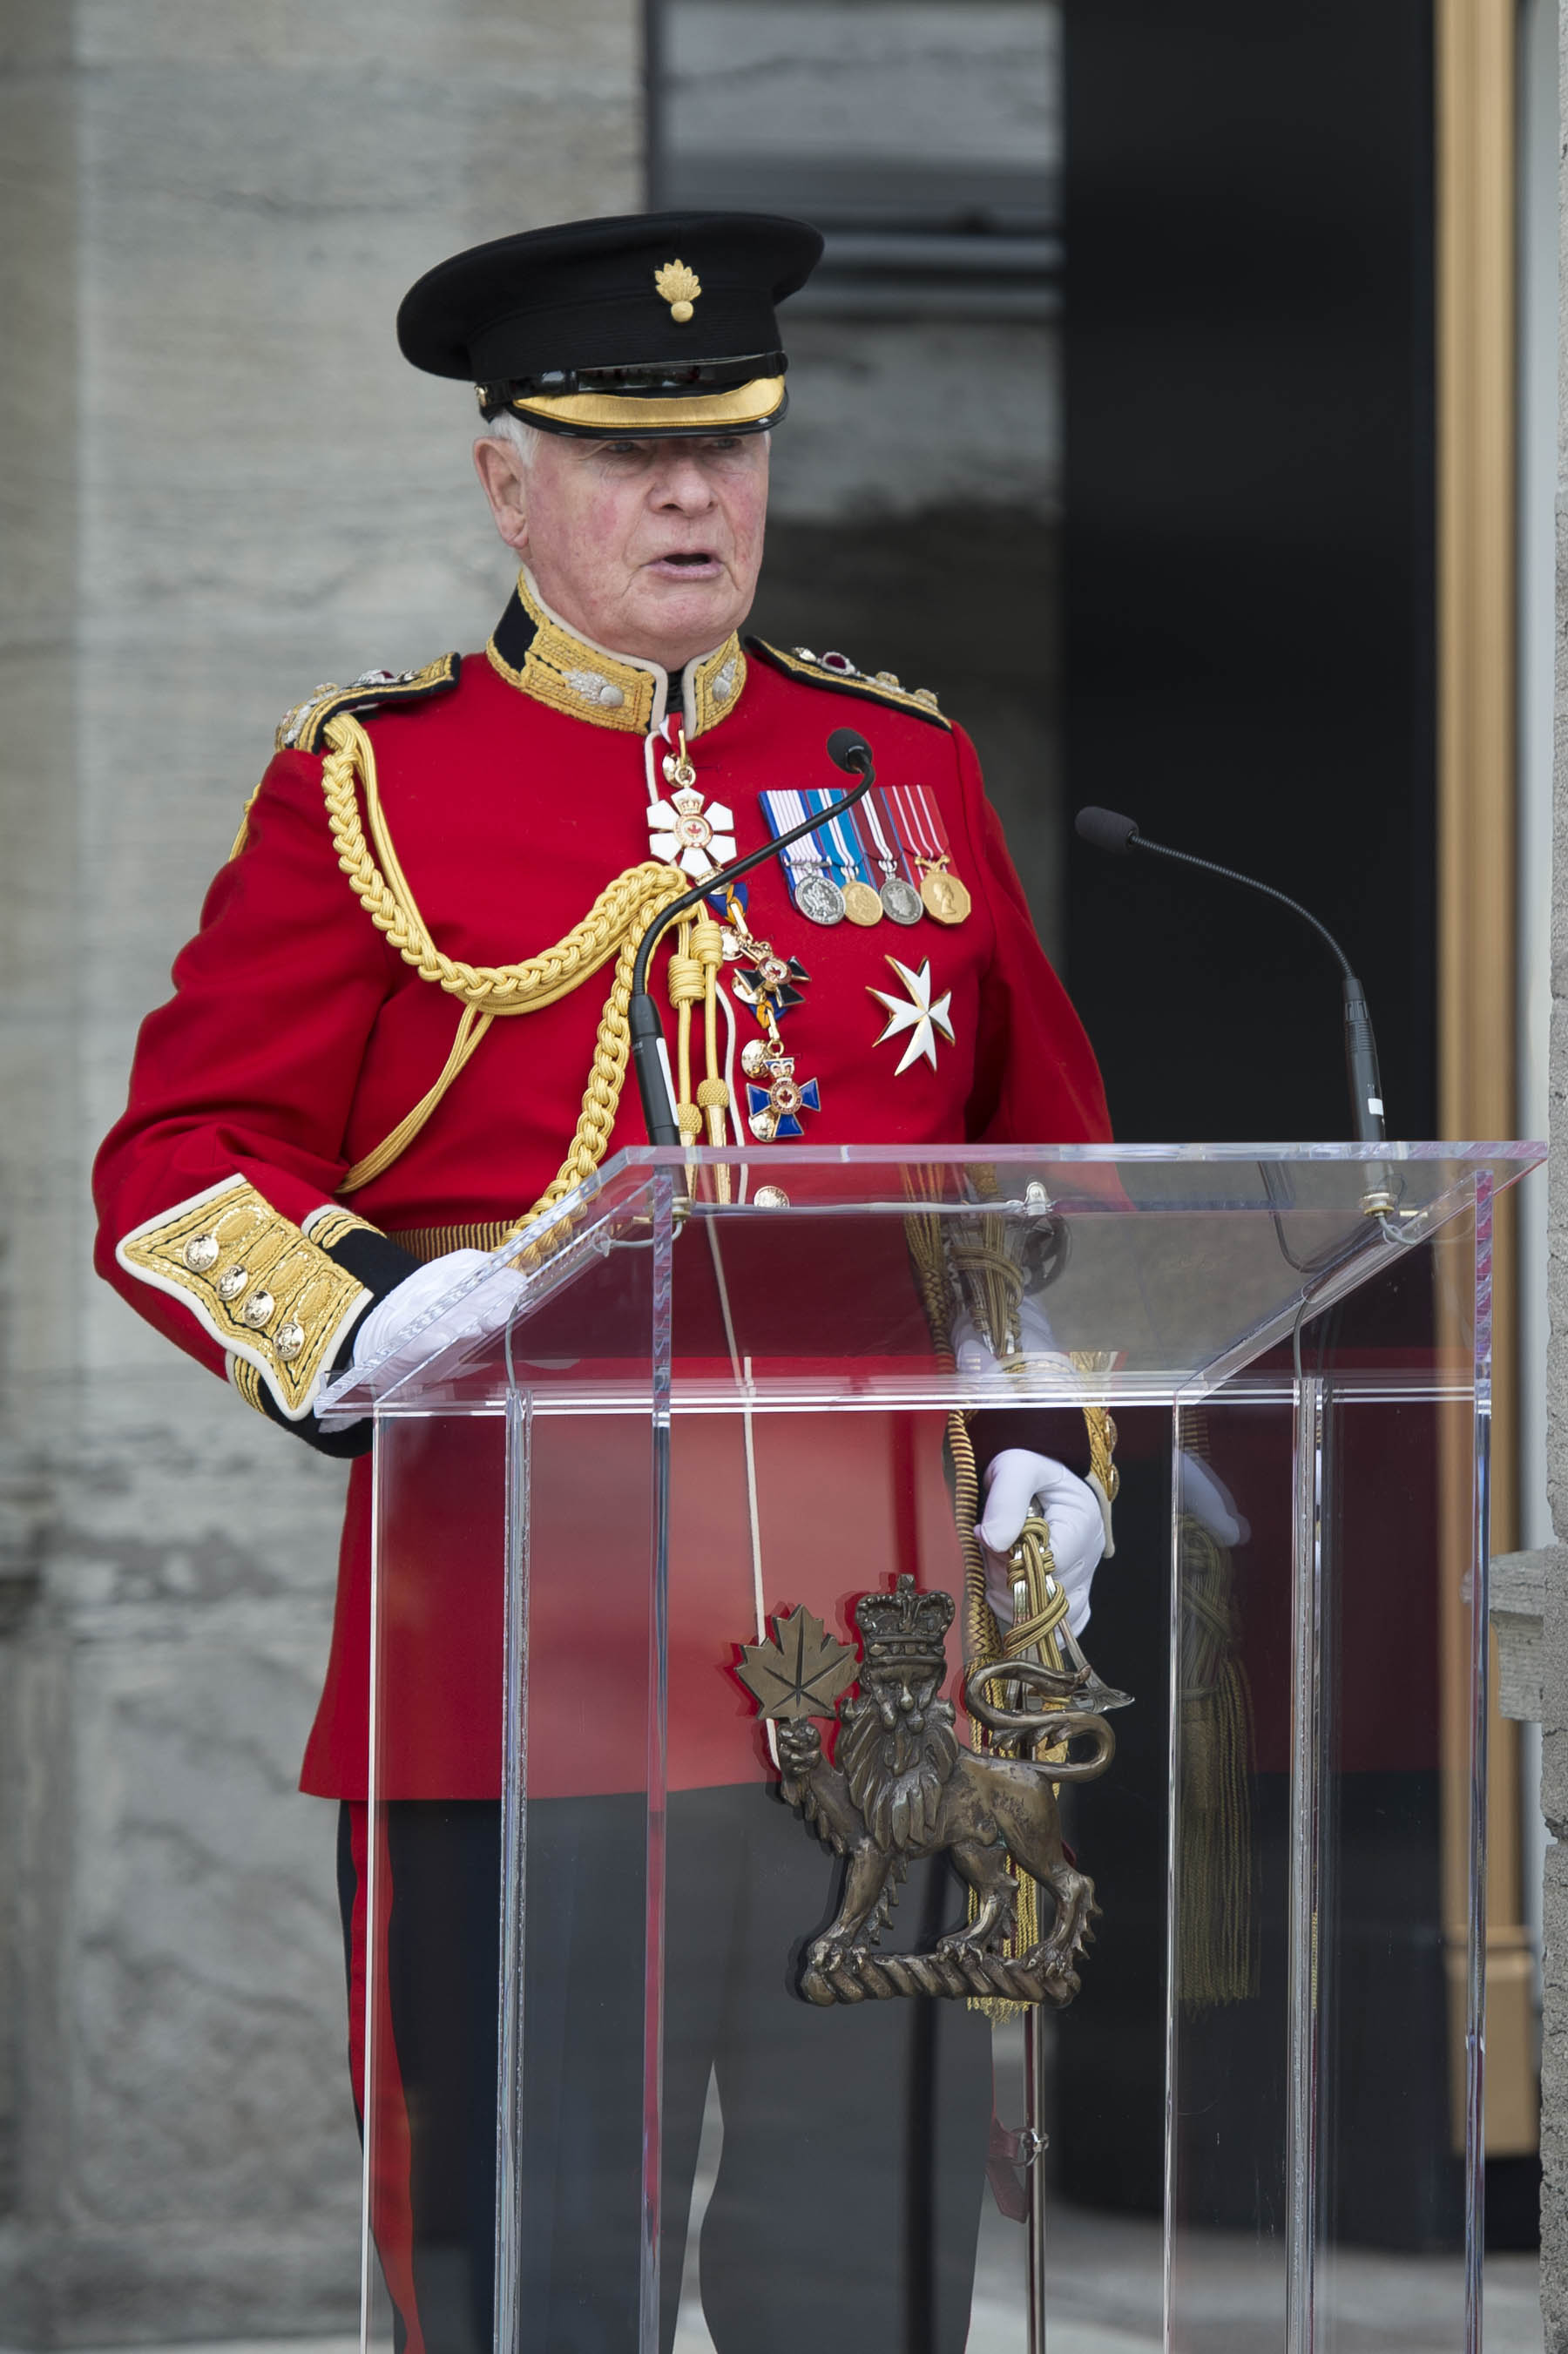 """You represent something exceptional to all of us,"" said His Excellency. ""You represent duty and honour and our values and traditions. And you capture our imaginations with pageantry and colour. Not to mention those really cool hats! We're so proud of you, who serve your country, who sacrifice so much."""